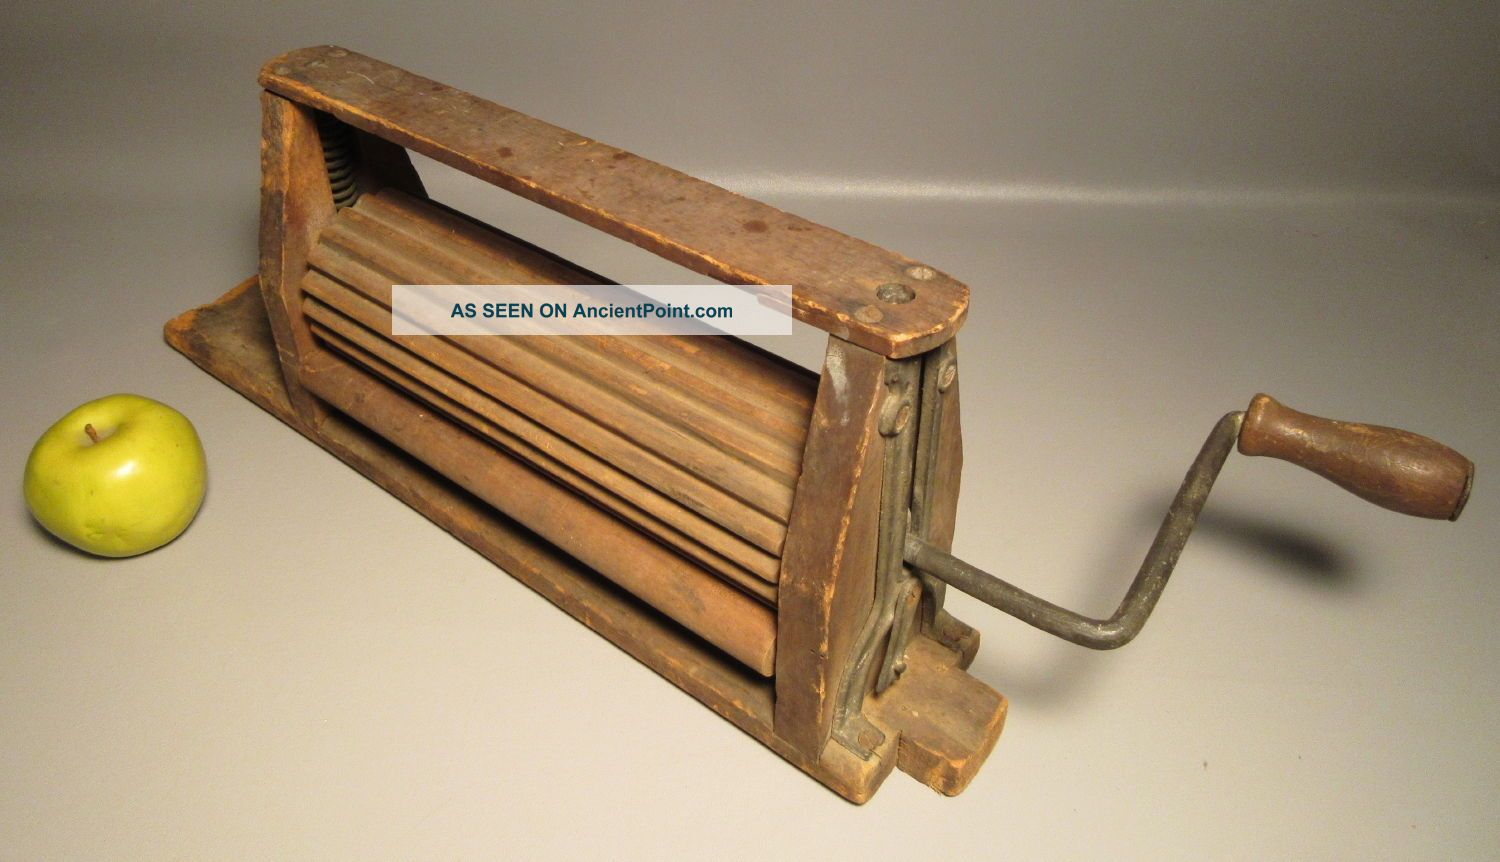 1871 Antique Wood Clothes Wringer For Doing Laundry W/metal Hand Crank Clothing Wringers photo